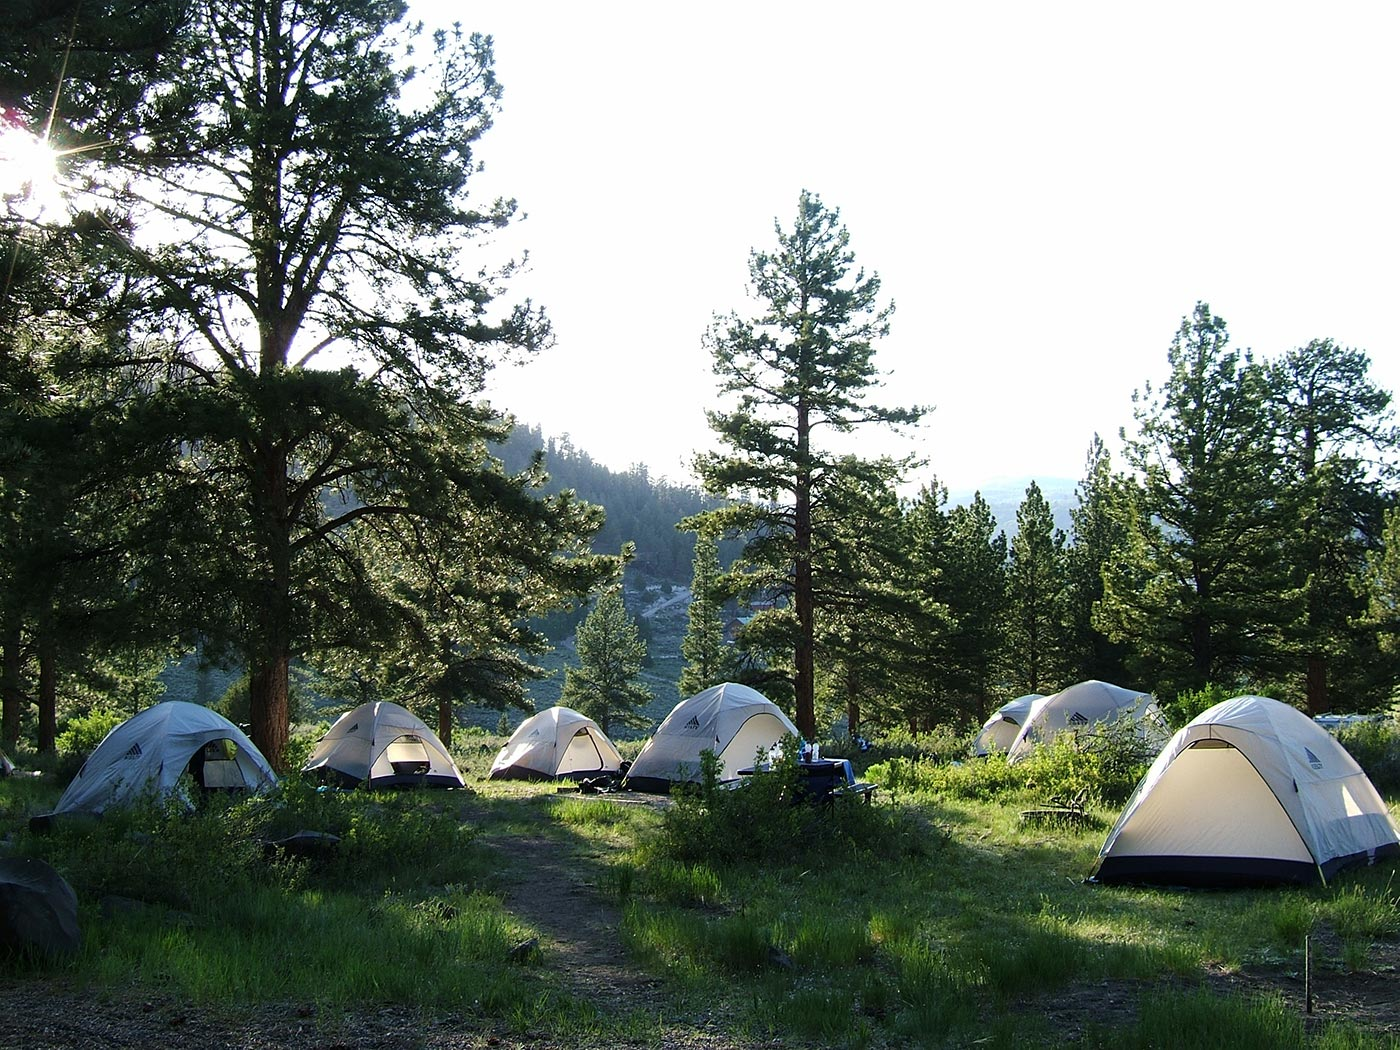 Camping Gear: Tents in a Meadow